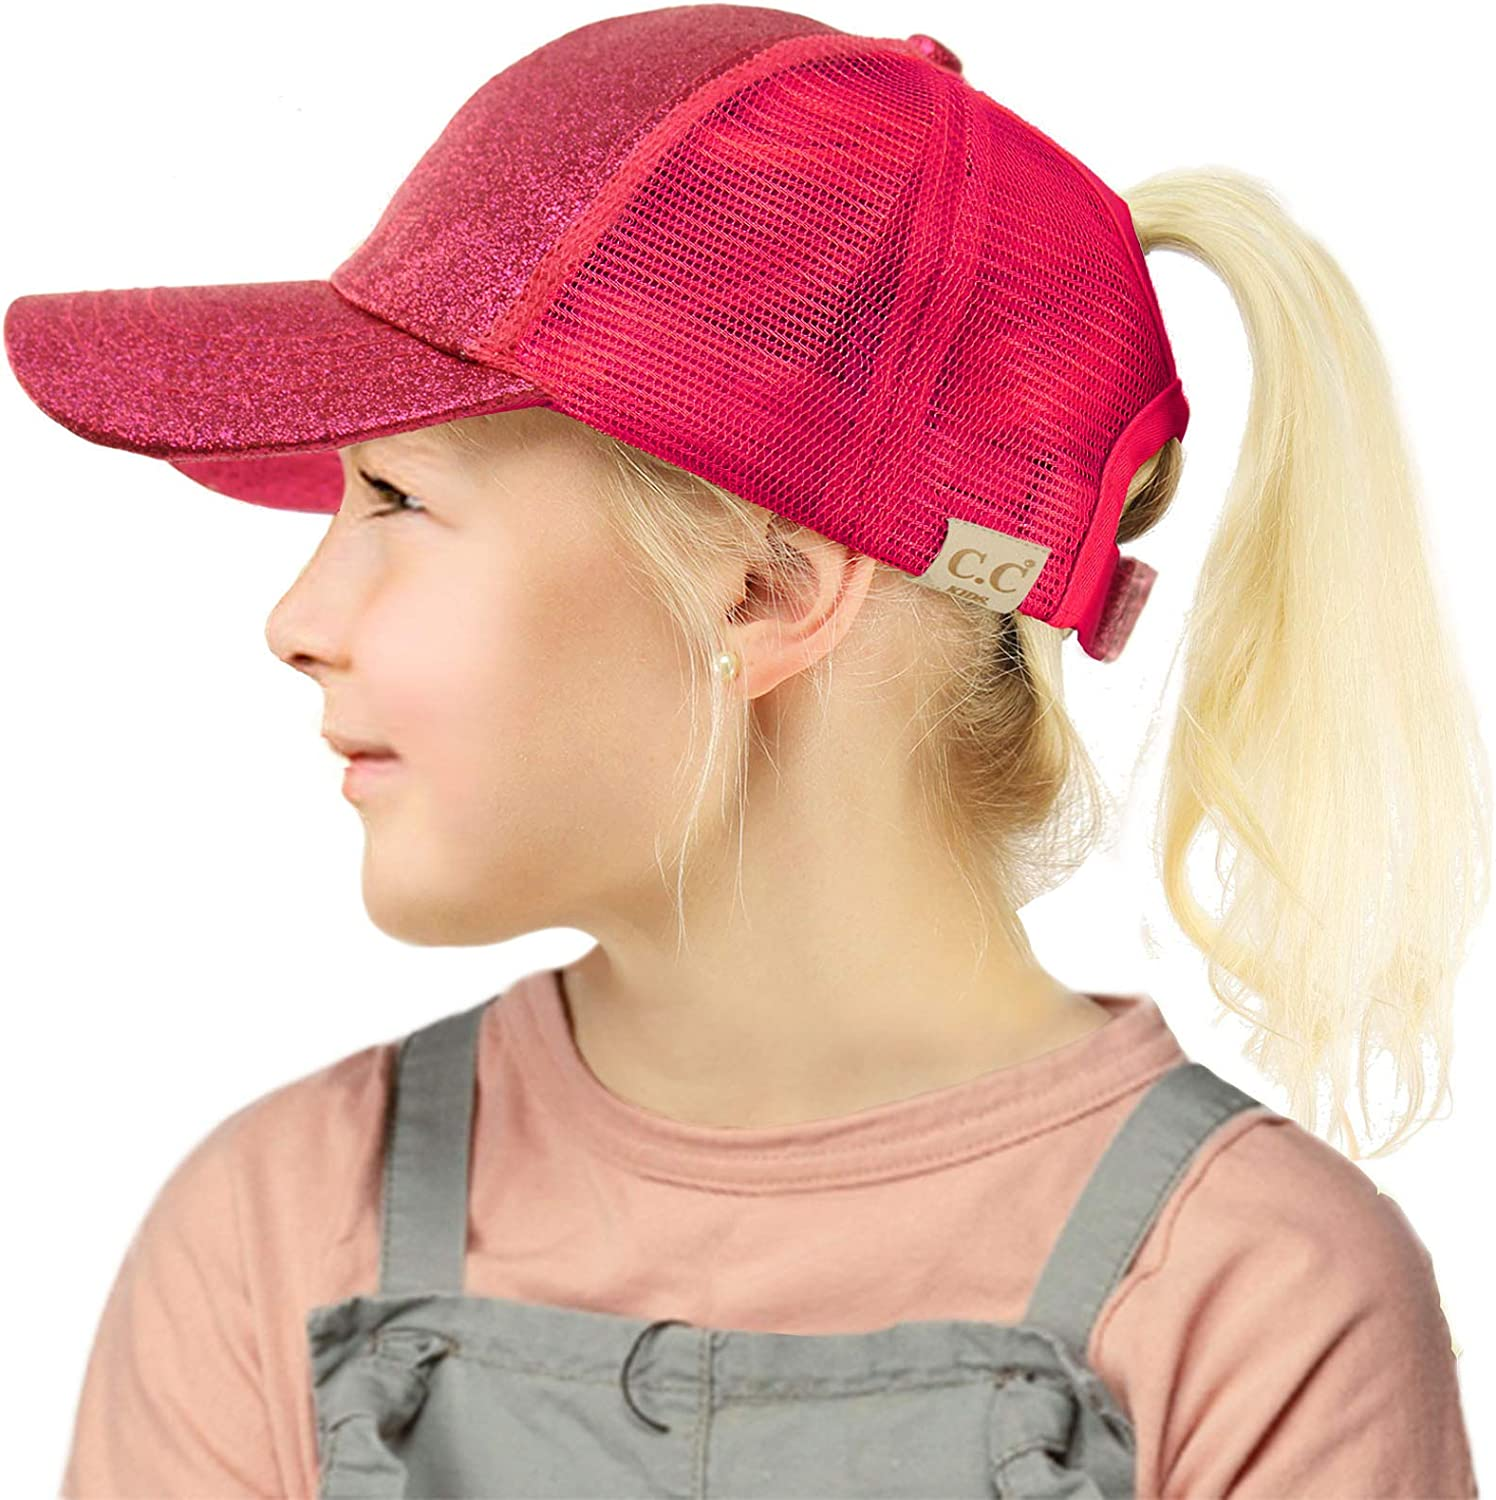 Solid Kids Hats Ponytail Baseball Vintage Washed Cotton Sun Hat for Girl Fit 1 to 3 Years